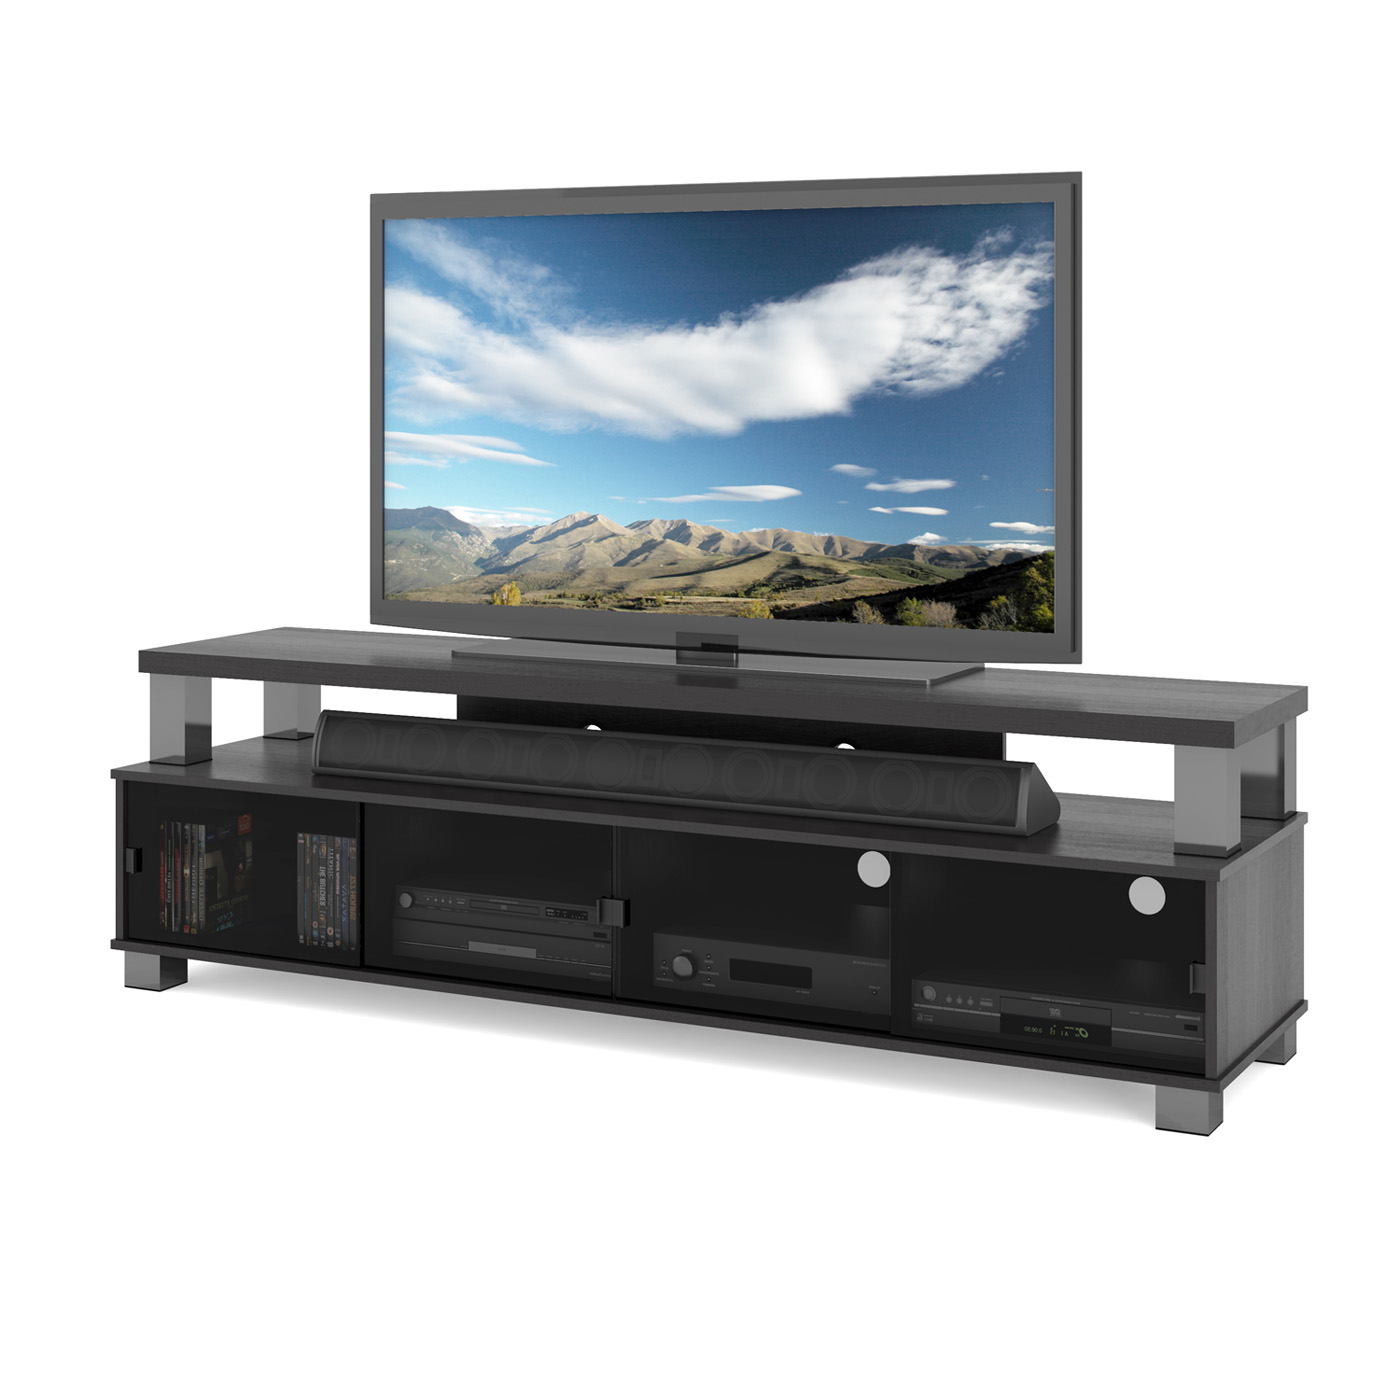 Modern Tv Stands | Lowe's Canada Pertaining To Oxford 70 Inch Tv Stands (View 12 of 20)